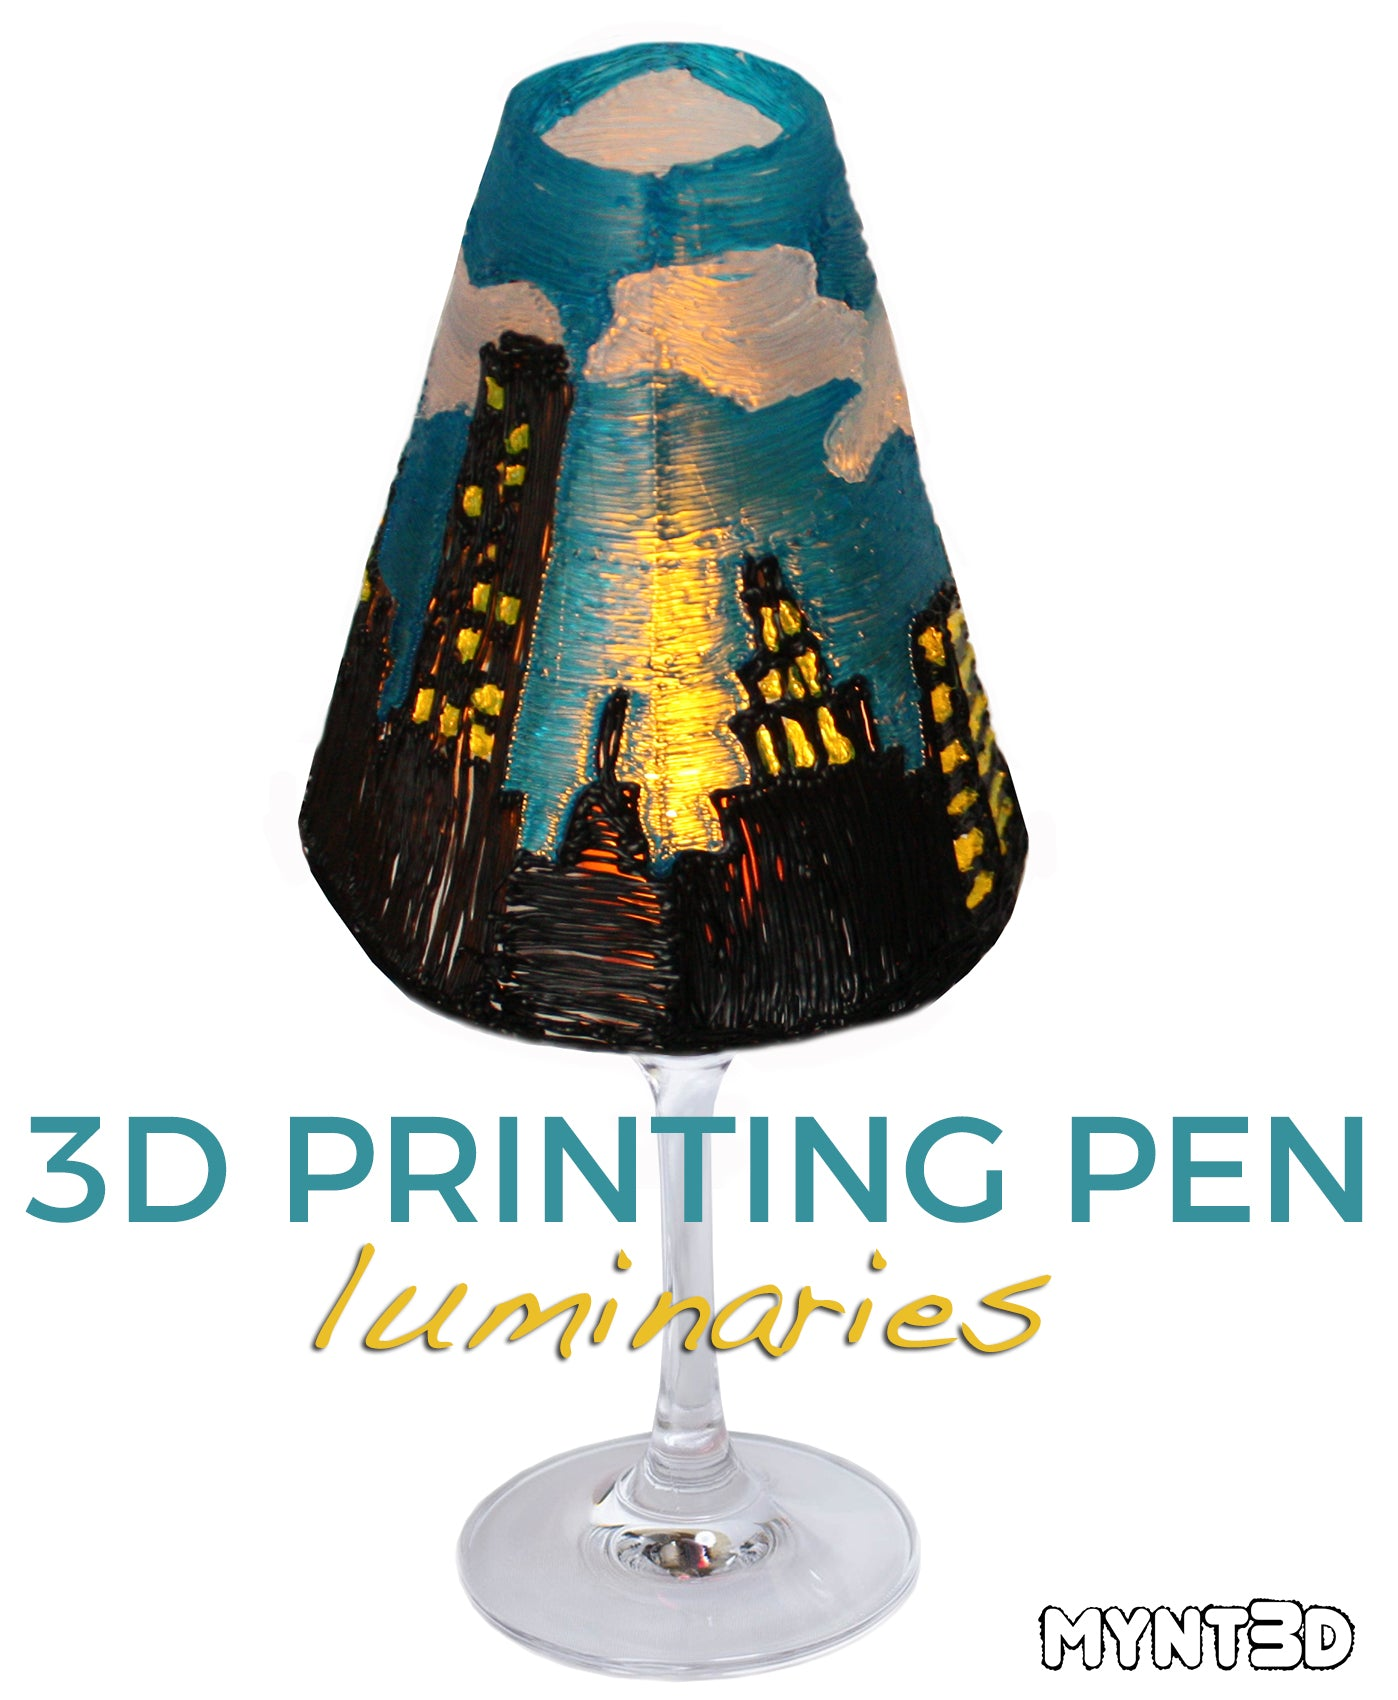 3D Printing Pen Luminaries